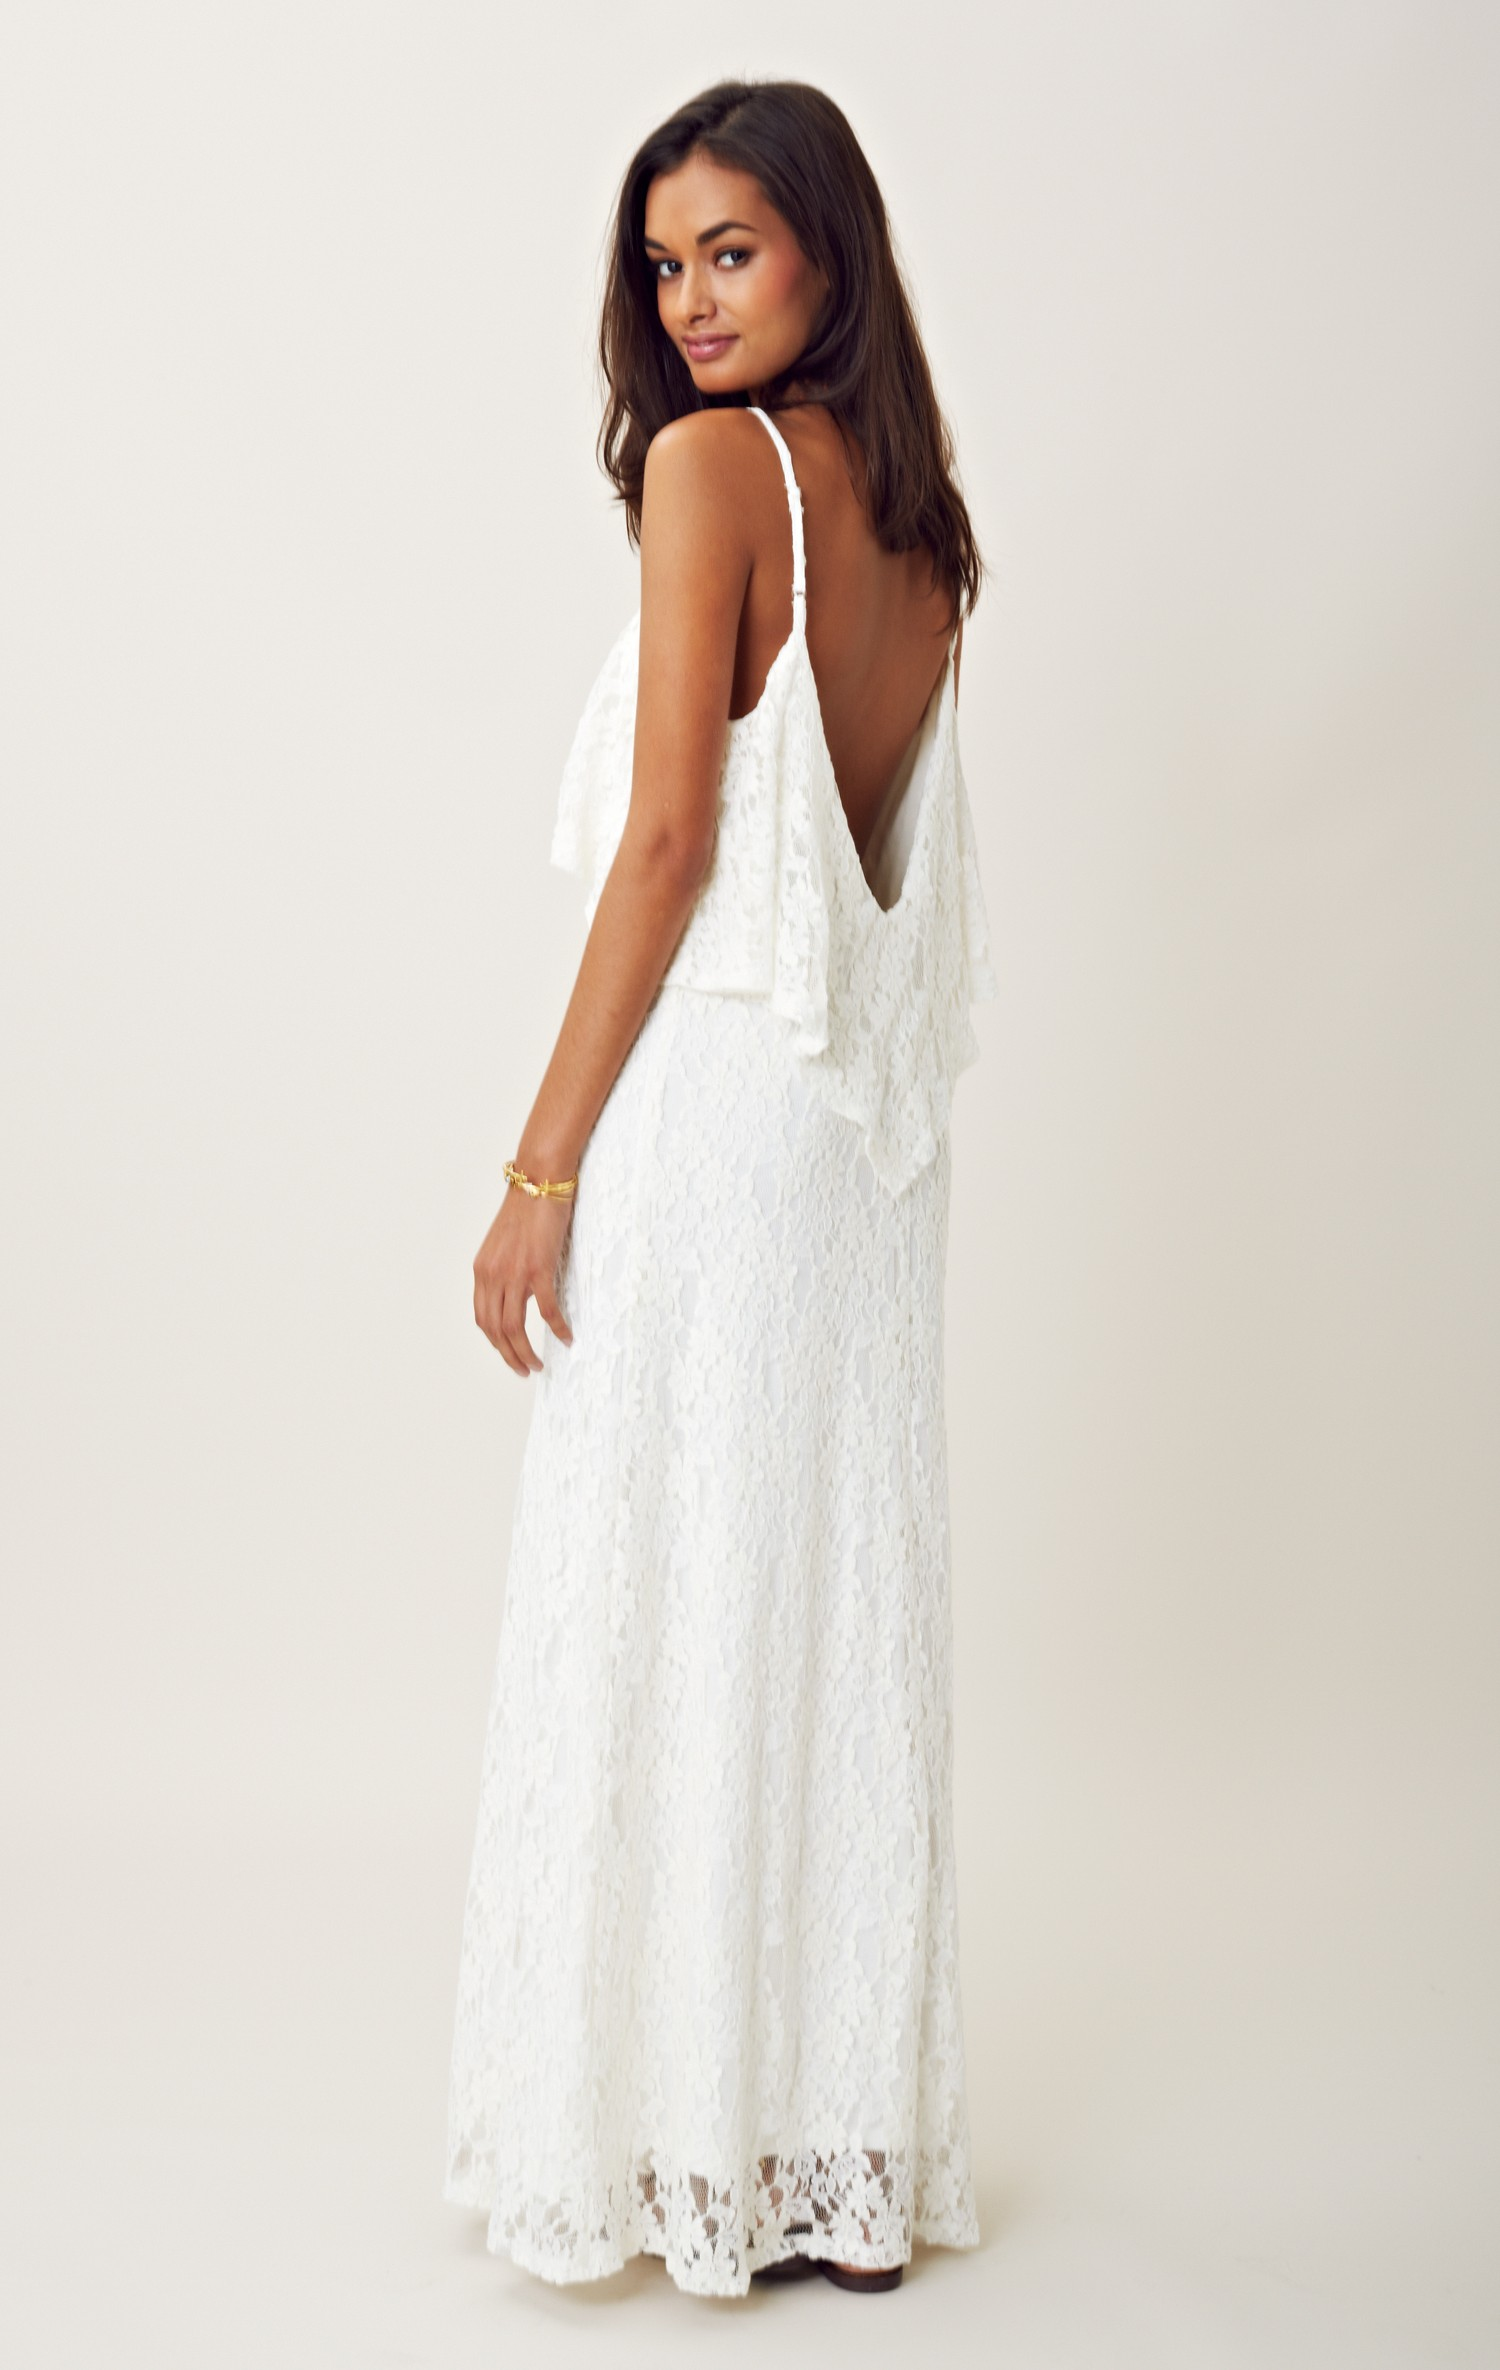 white strapless summer maxi dress | ivo hoogveld